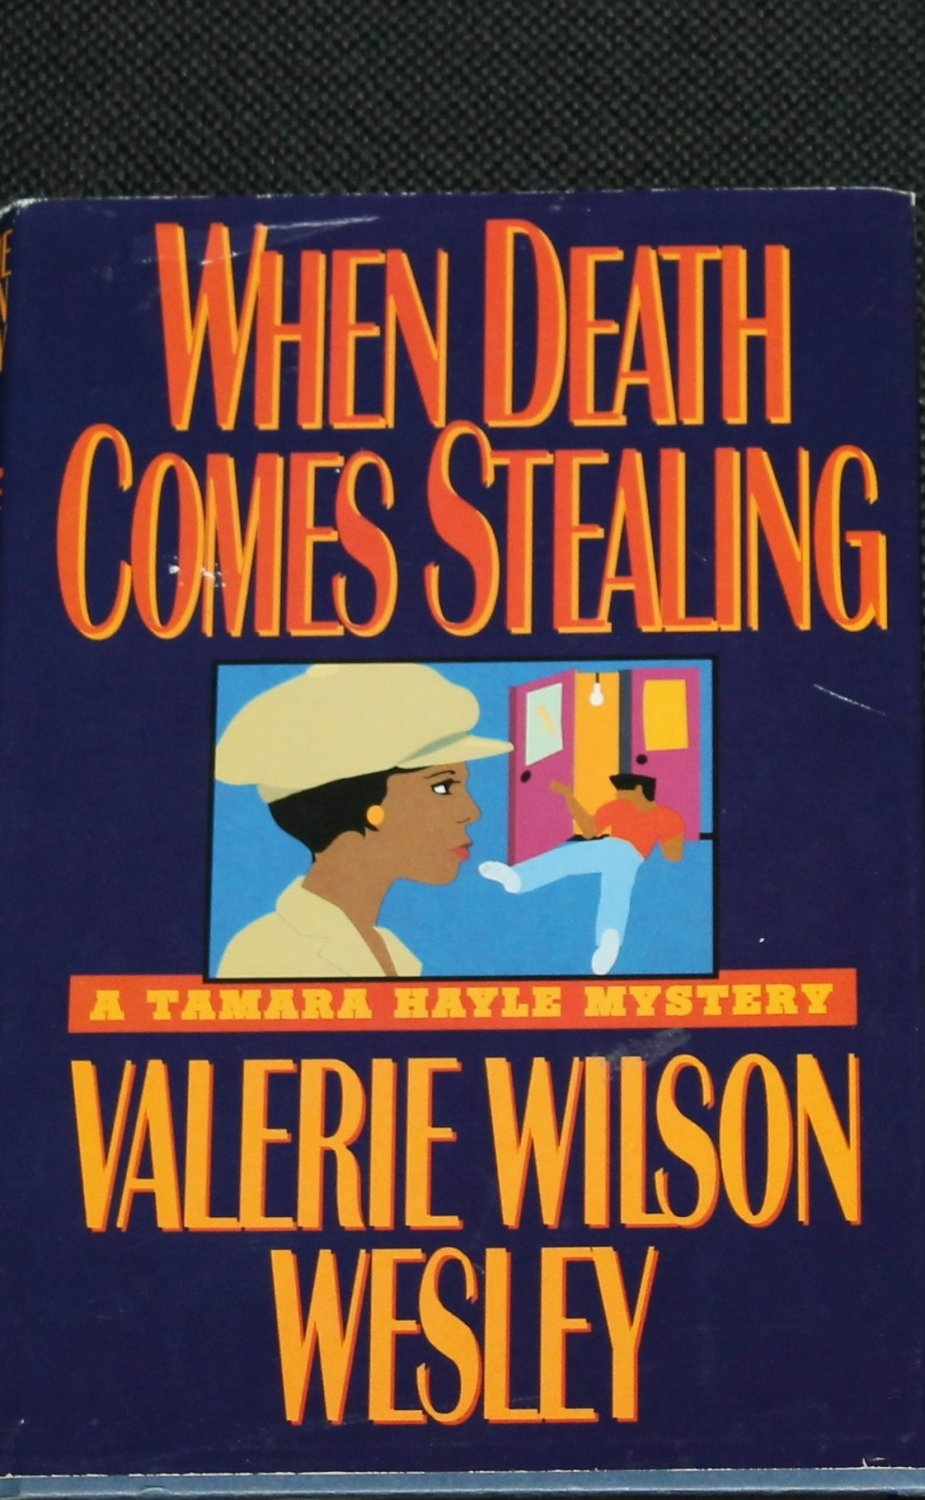 race issues in the novel no hiding place by valerie wilson wesley Valerie wilson wesley's easier to kill, the fifth novel in her increasingly popular tamara hayle series, continues to provide new twists to the classic gumshoe first-person narrative hayle is a newark, new jersey, pi, and also a struggling, young, african american single parent of a teenage boy, jamal.